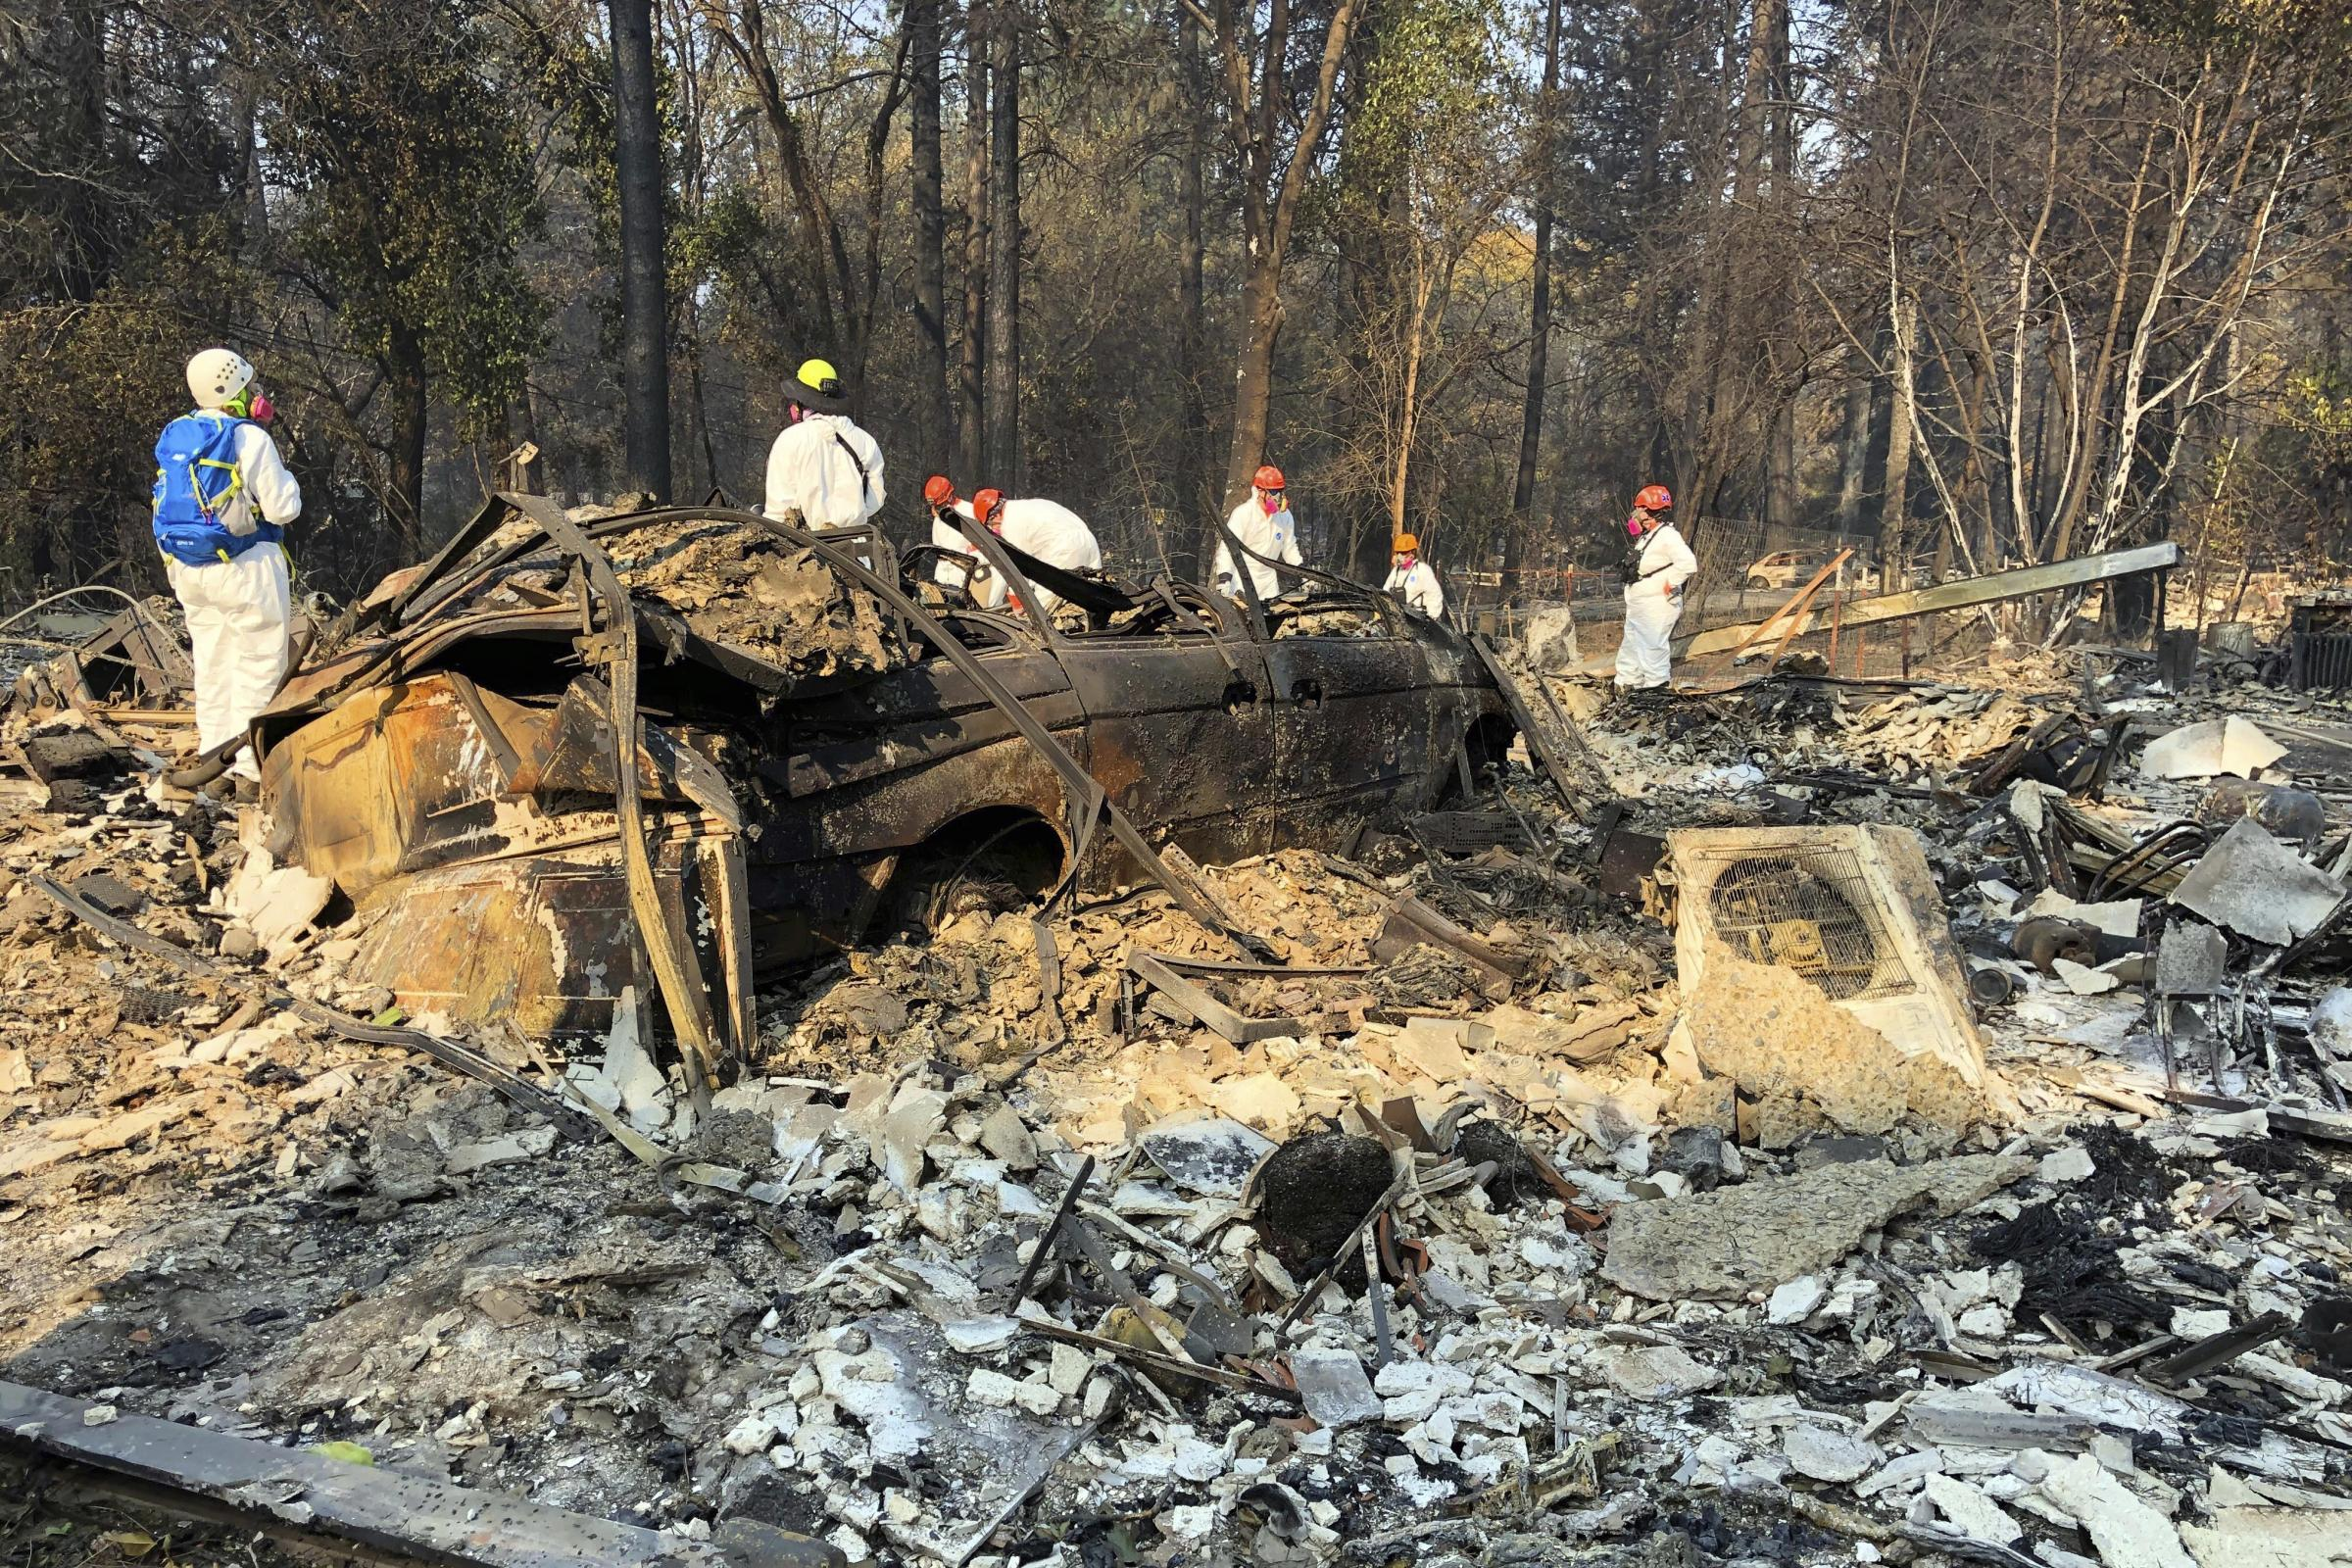 Hundreds searching rubble in California for wildfire bodies as rain looms